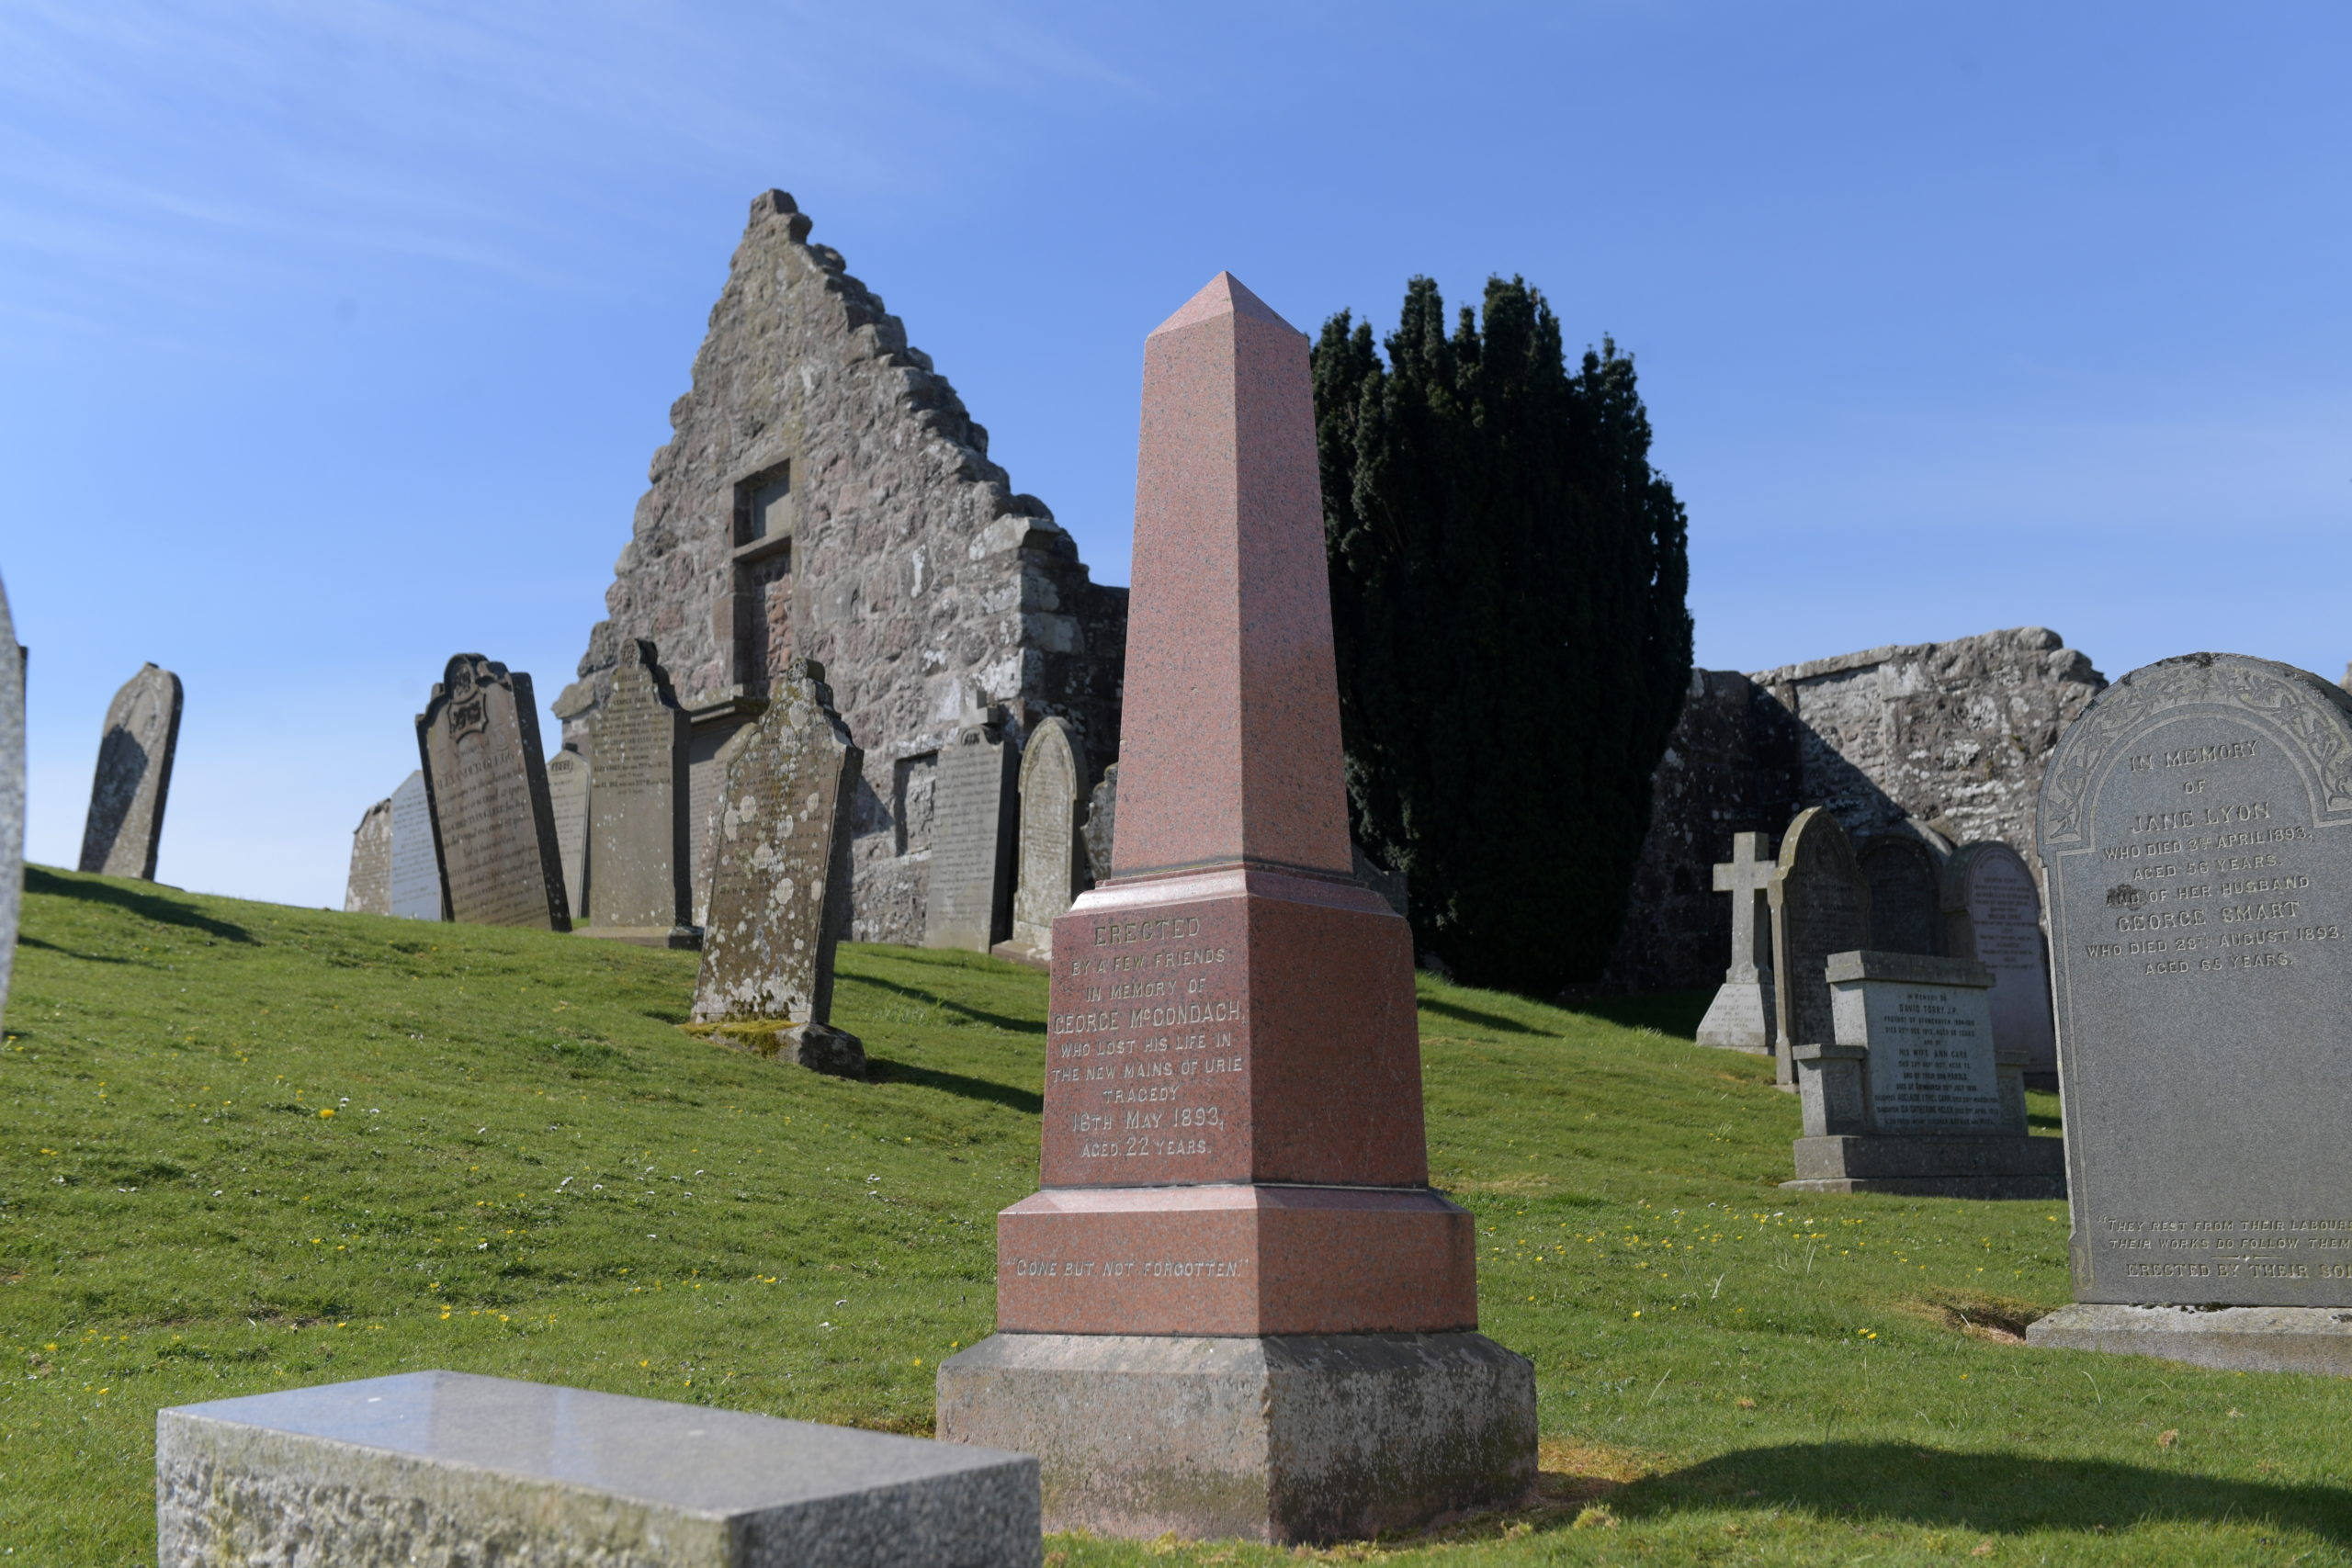 St Ciaran's Kirkyard in Kirkton of Fetteresso, Stonehaven. Here there is a memorial to the victim of a murder at cottages close by.